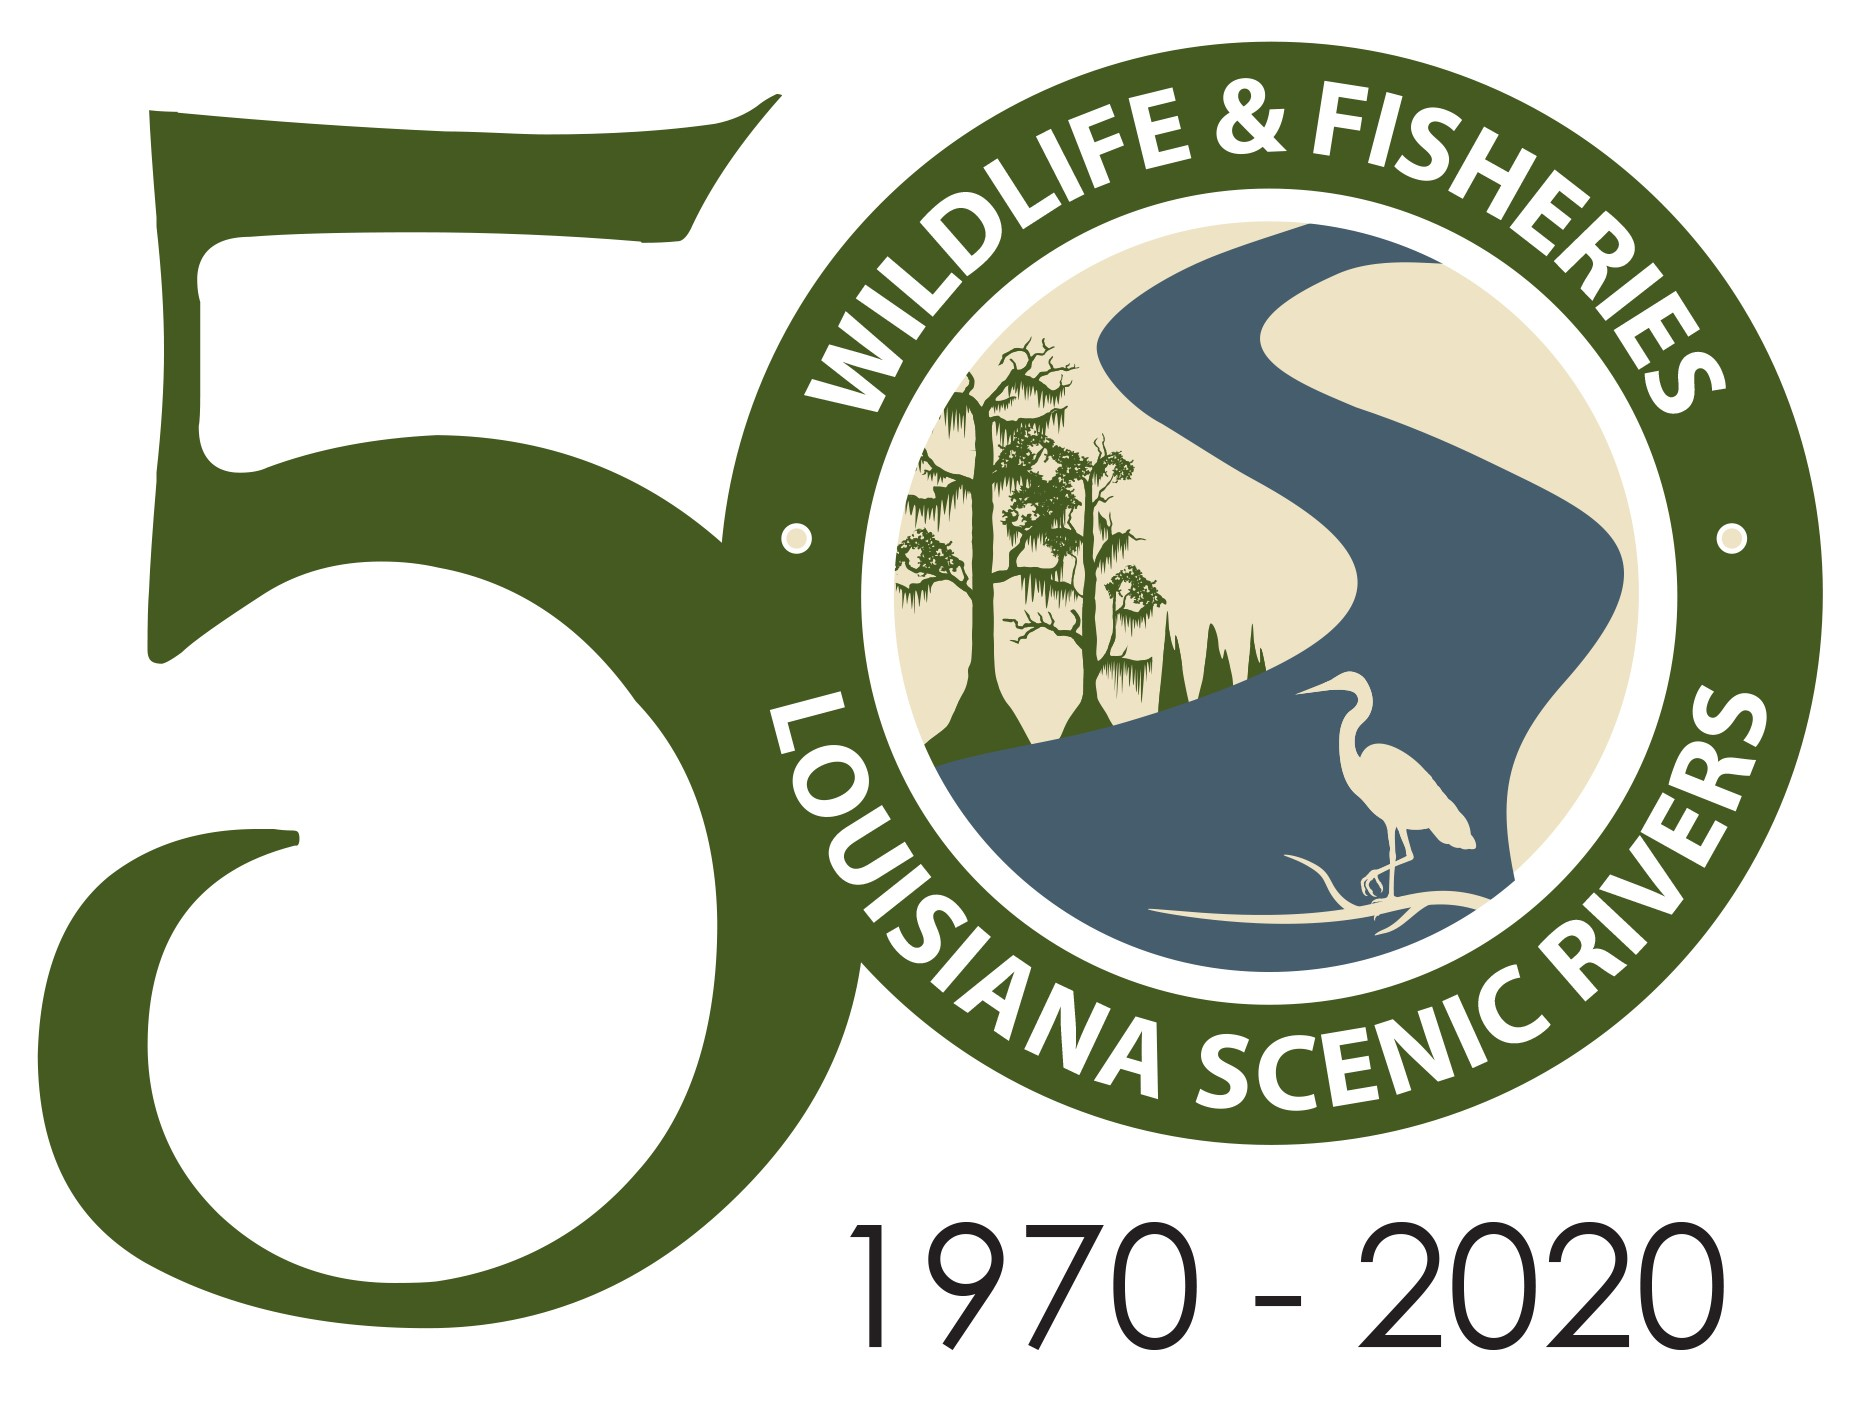 Scenic Rivers Act 50th Anniversary